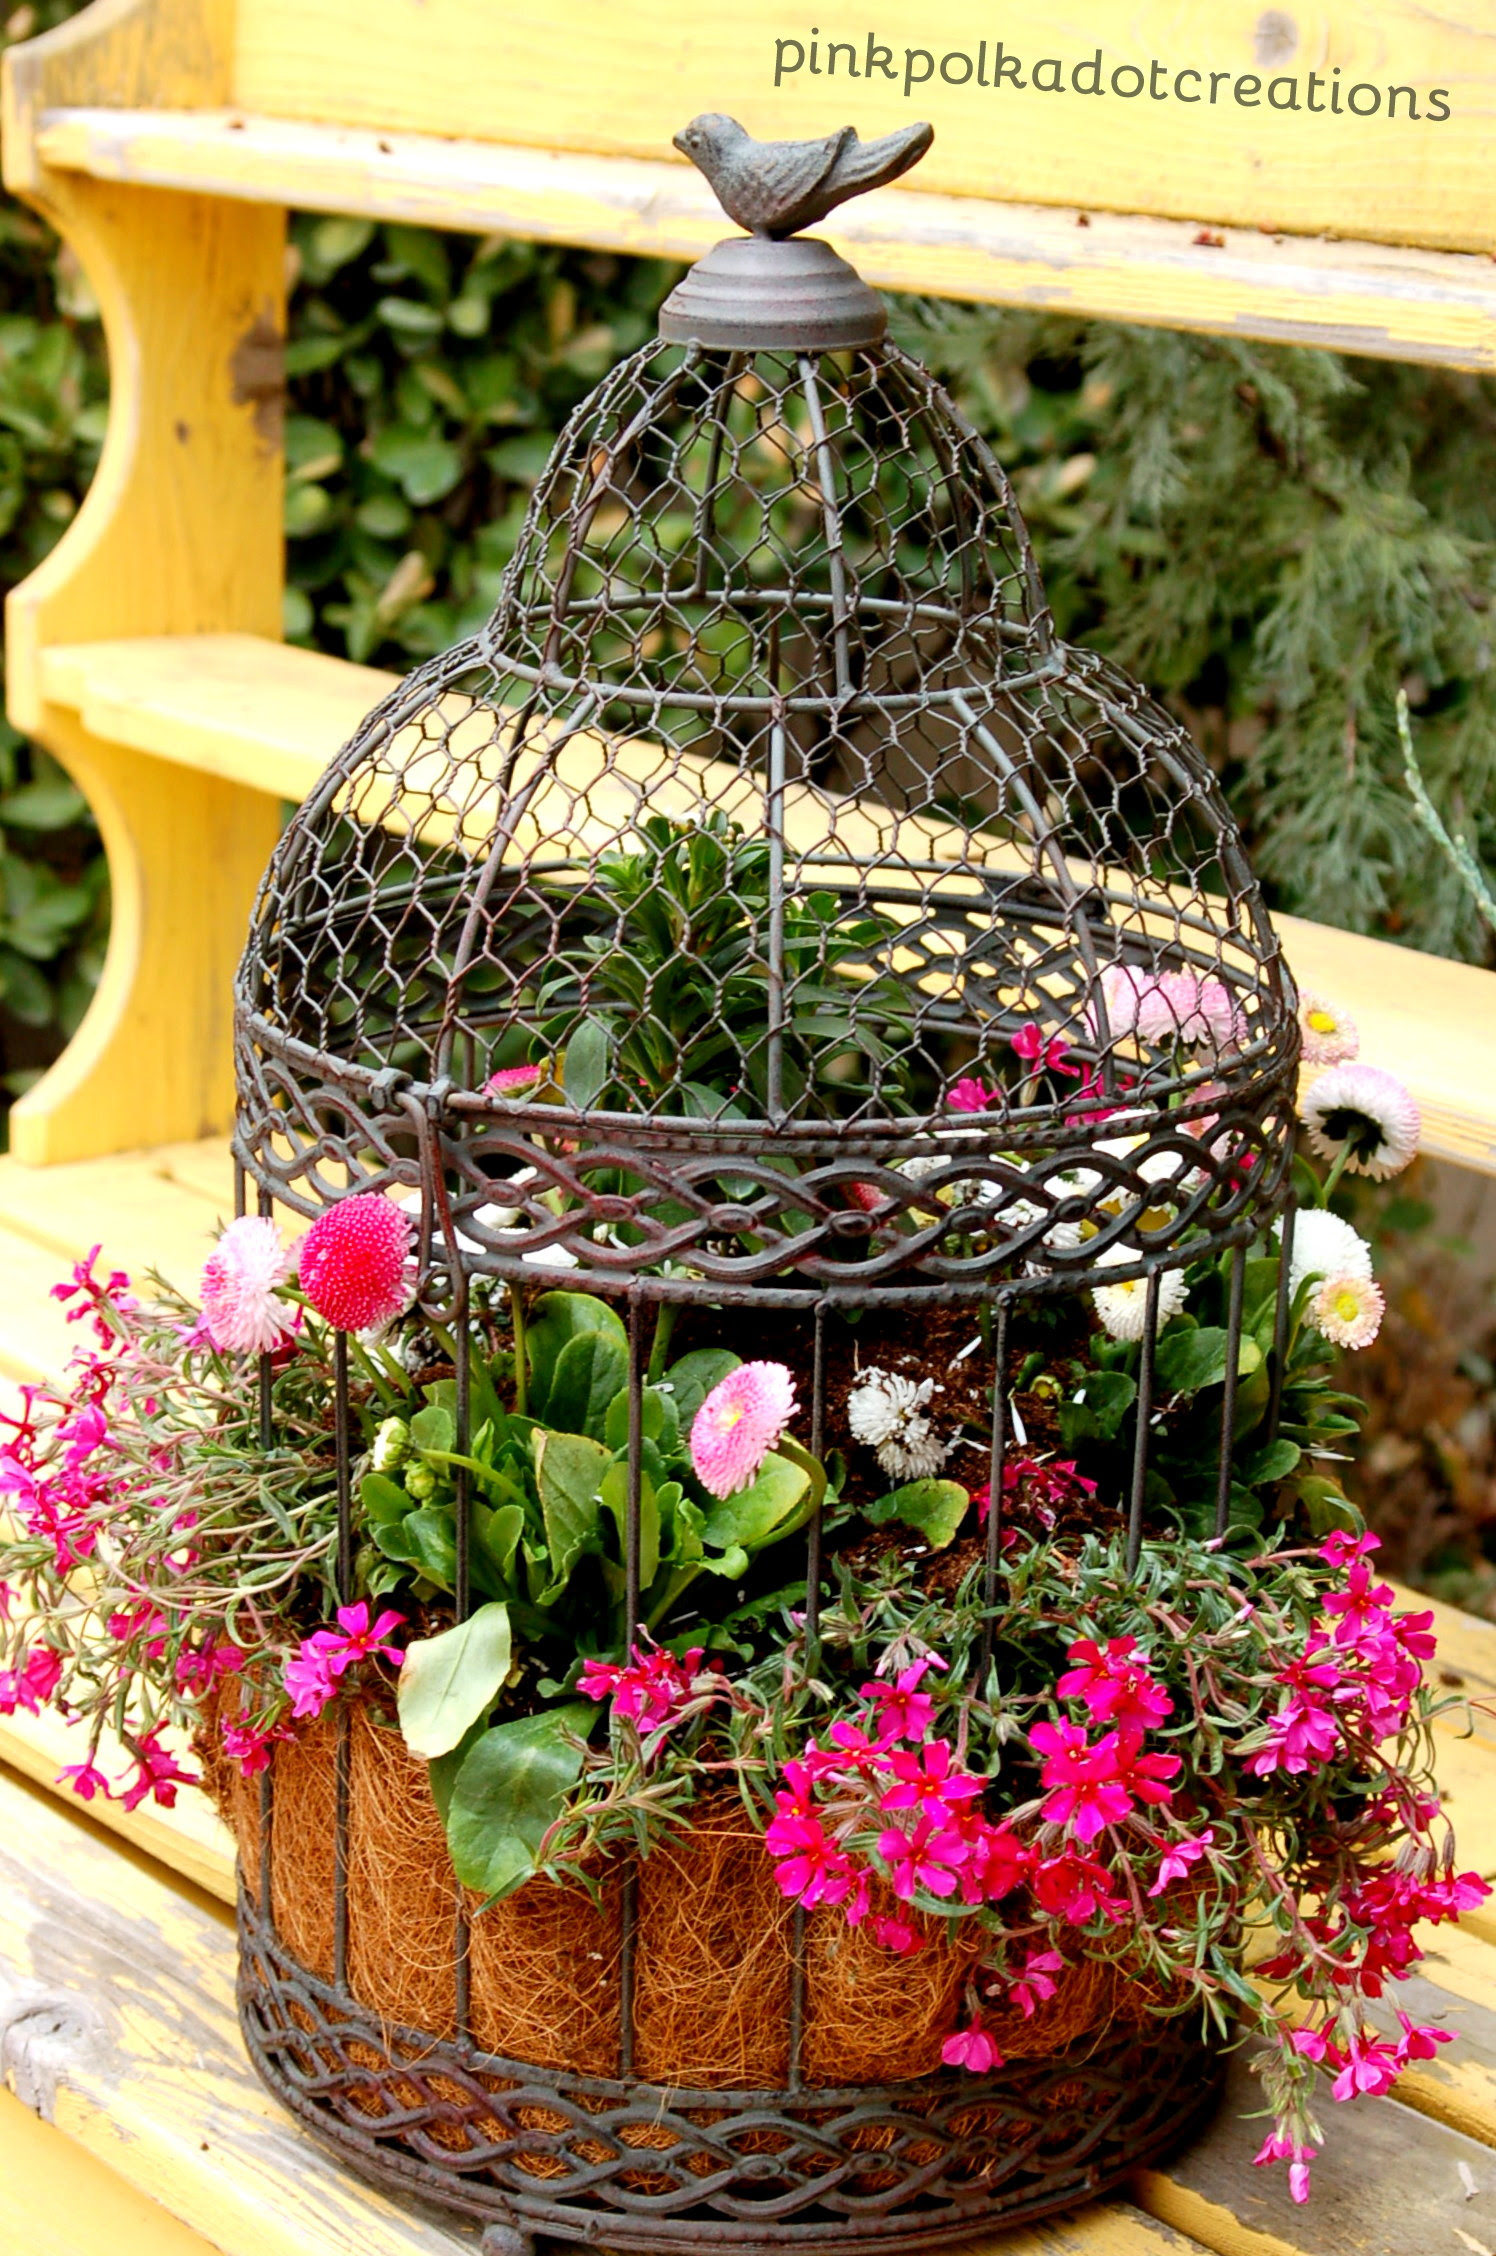 Backyard Gardening  Landscaping Tips And Ideas Growing Flowers Vegetables And Fruits